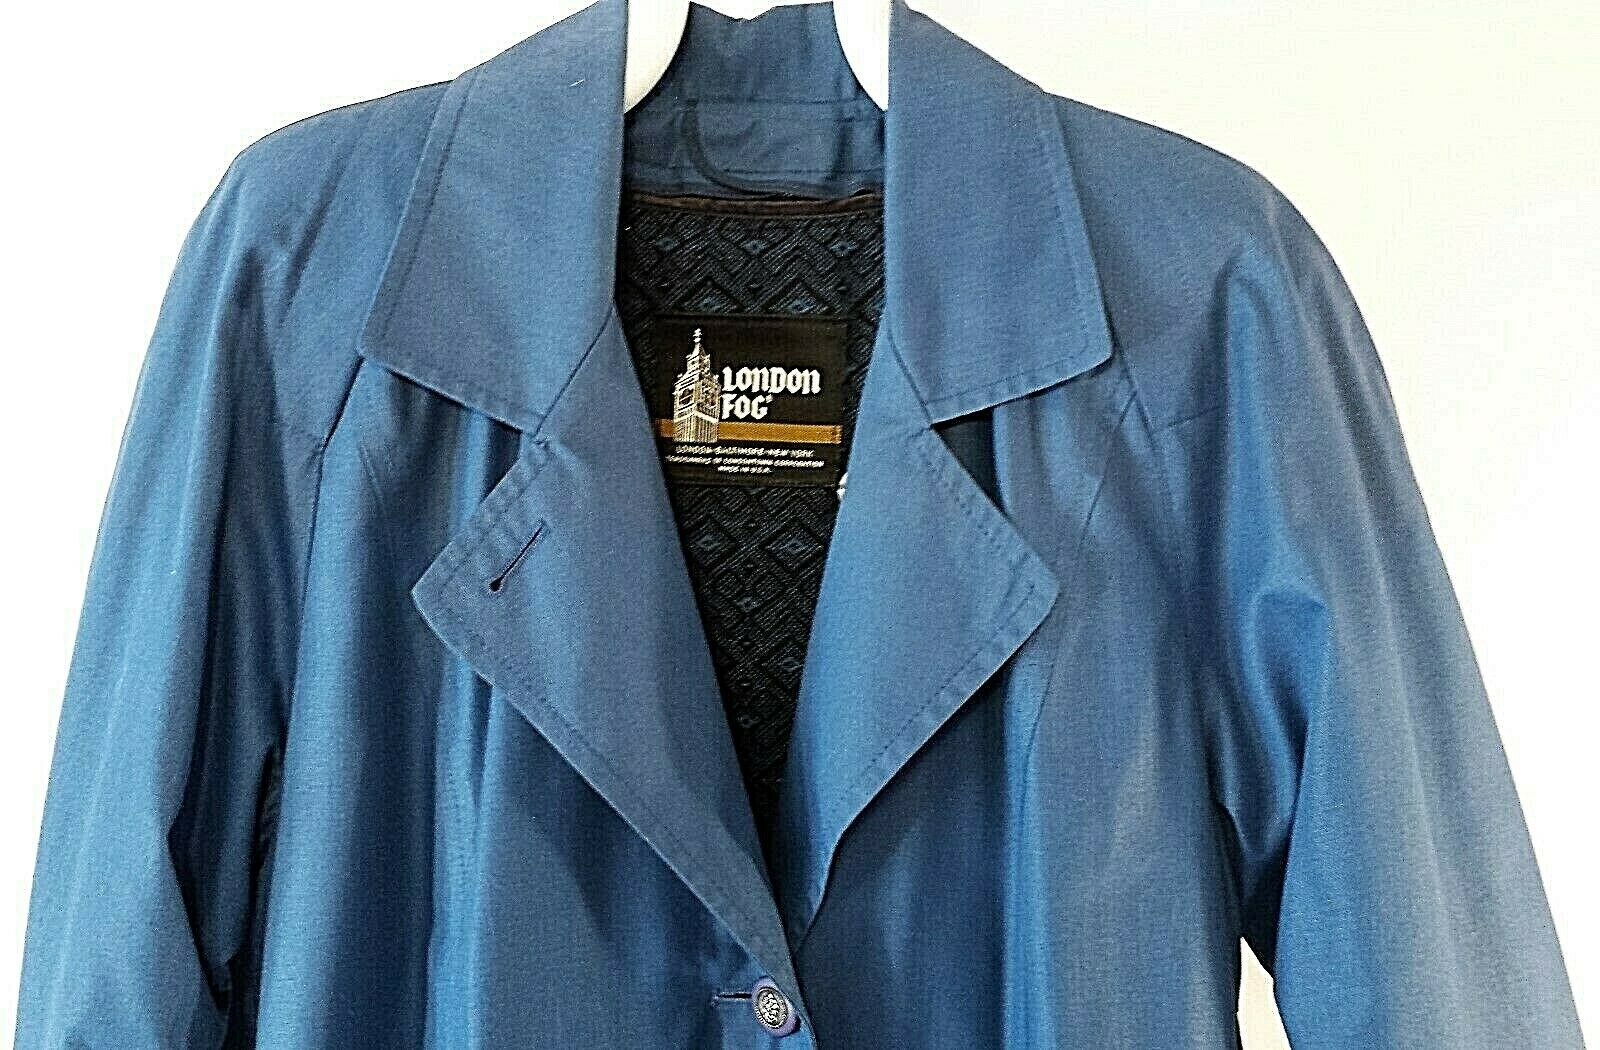 Vintage London Fog Wamsutta Lined Trench Rain Coat 10 P bluee Classic Belted USA